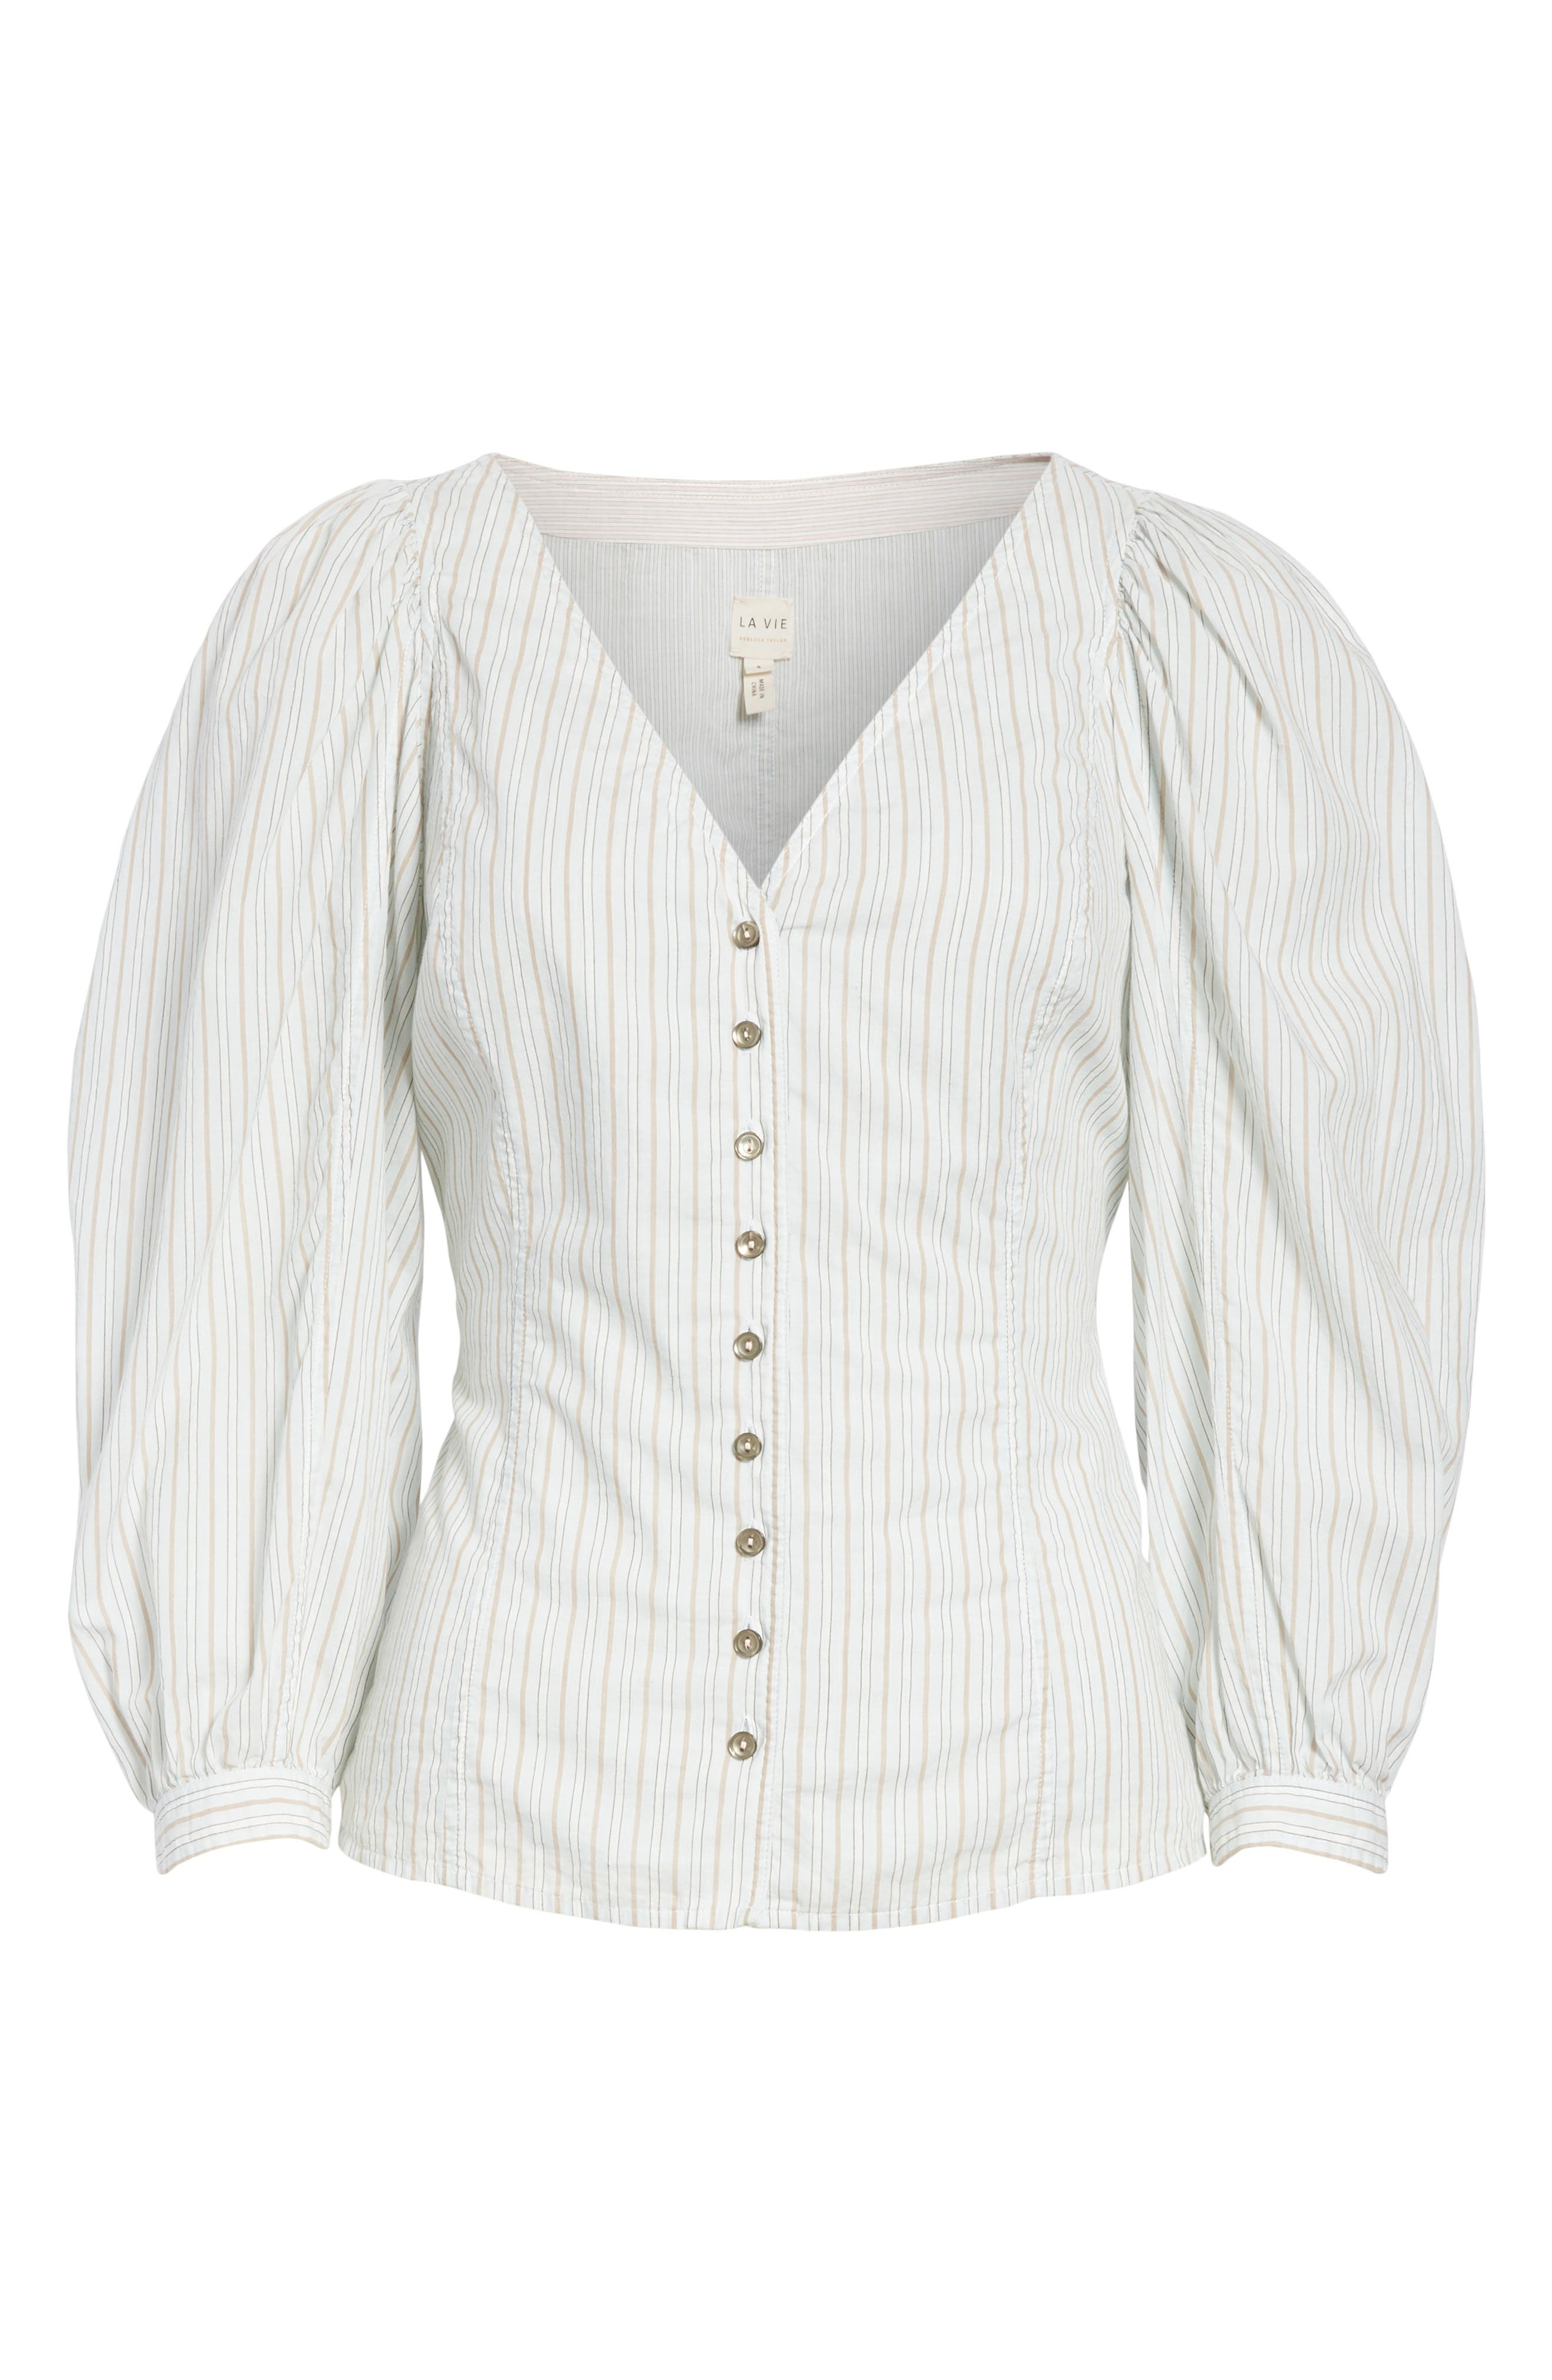 Mixed Stripe Top,                             Alternate thumbnail 6, color,                             186